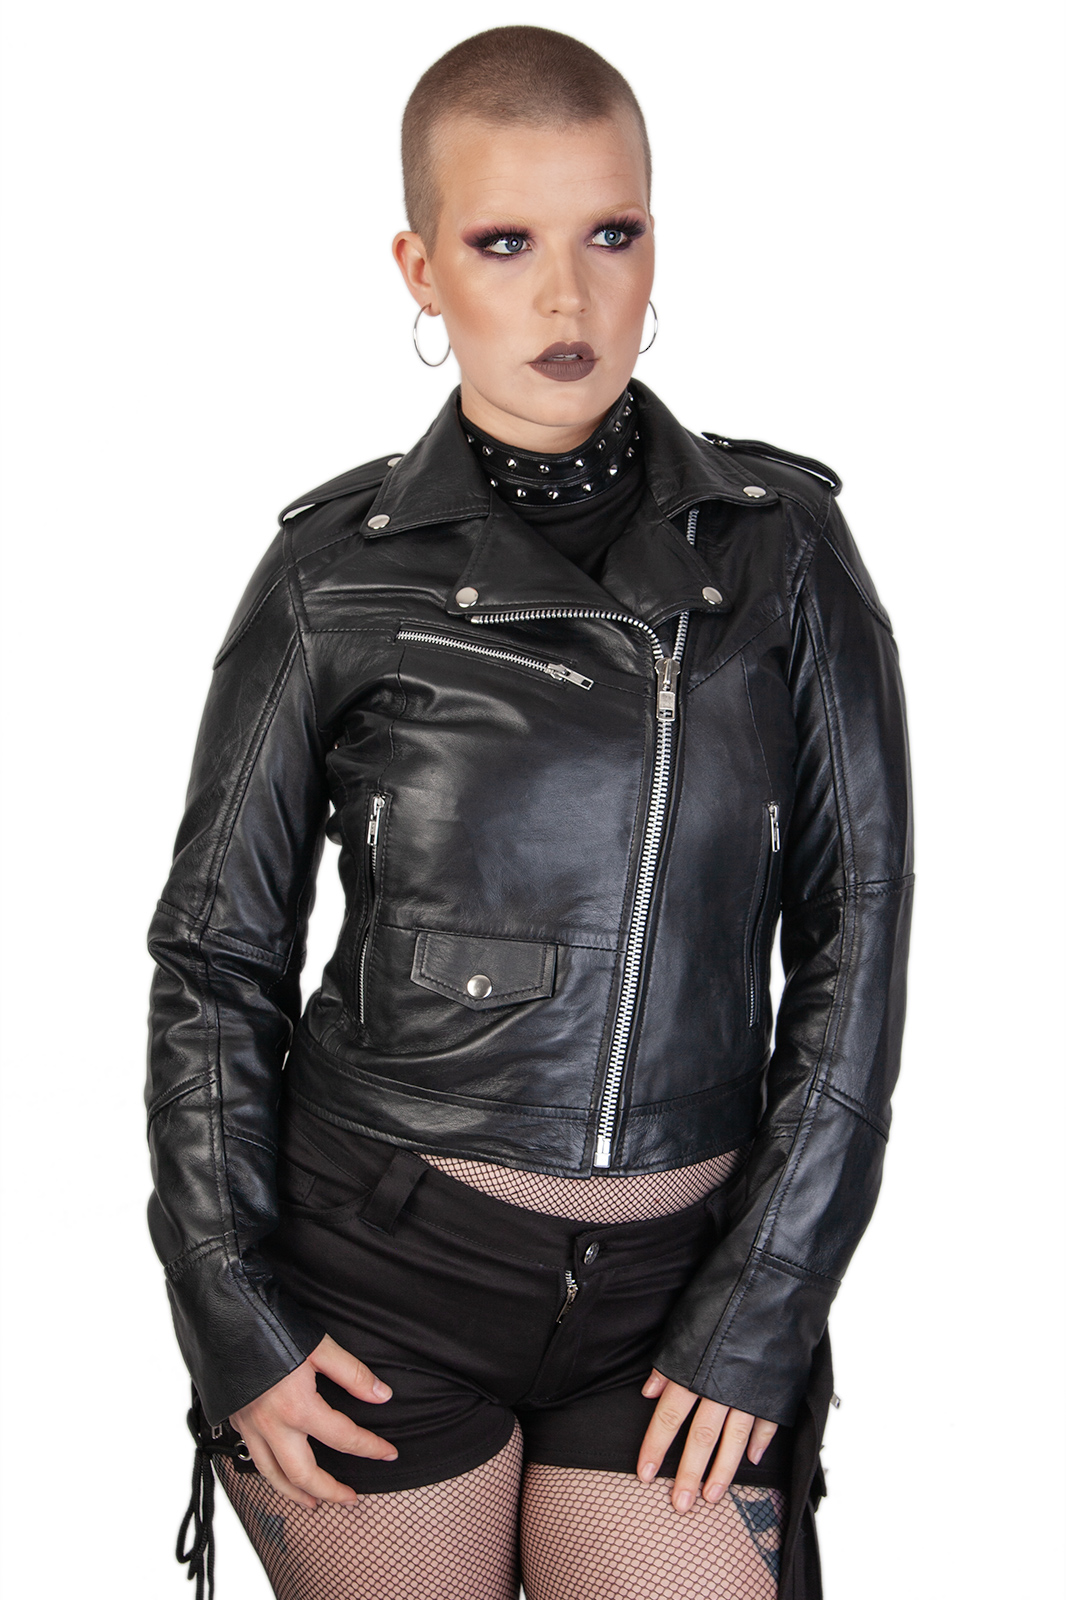 Real Leather Jacker Girls Black